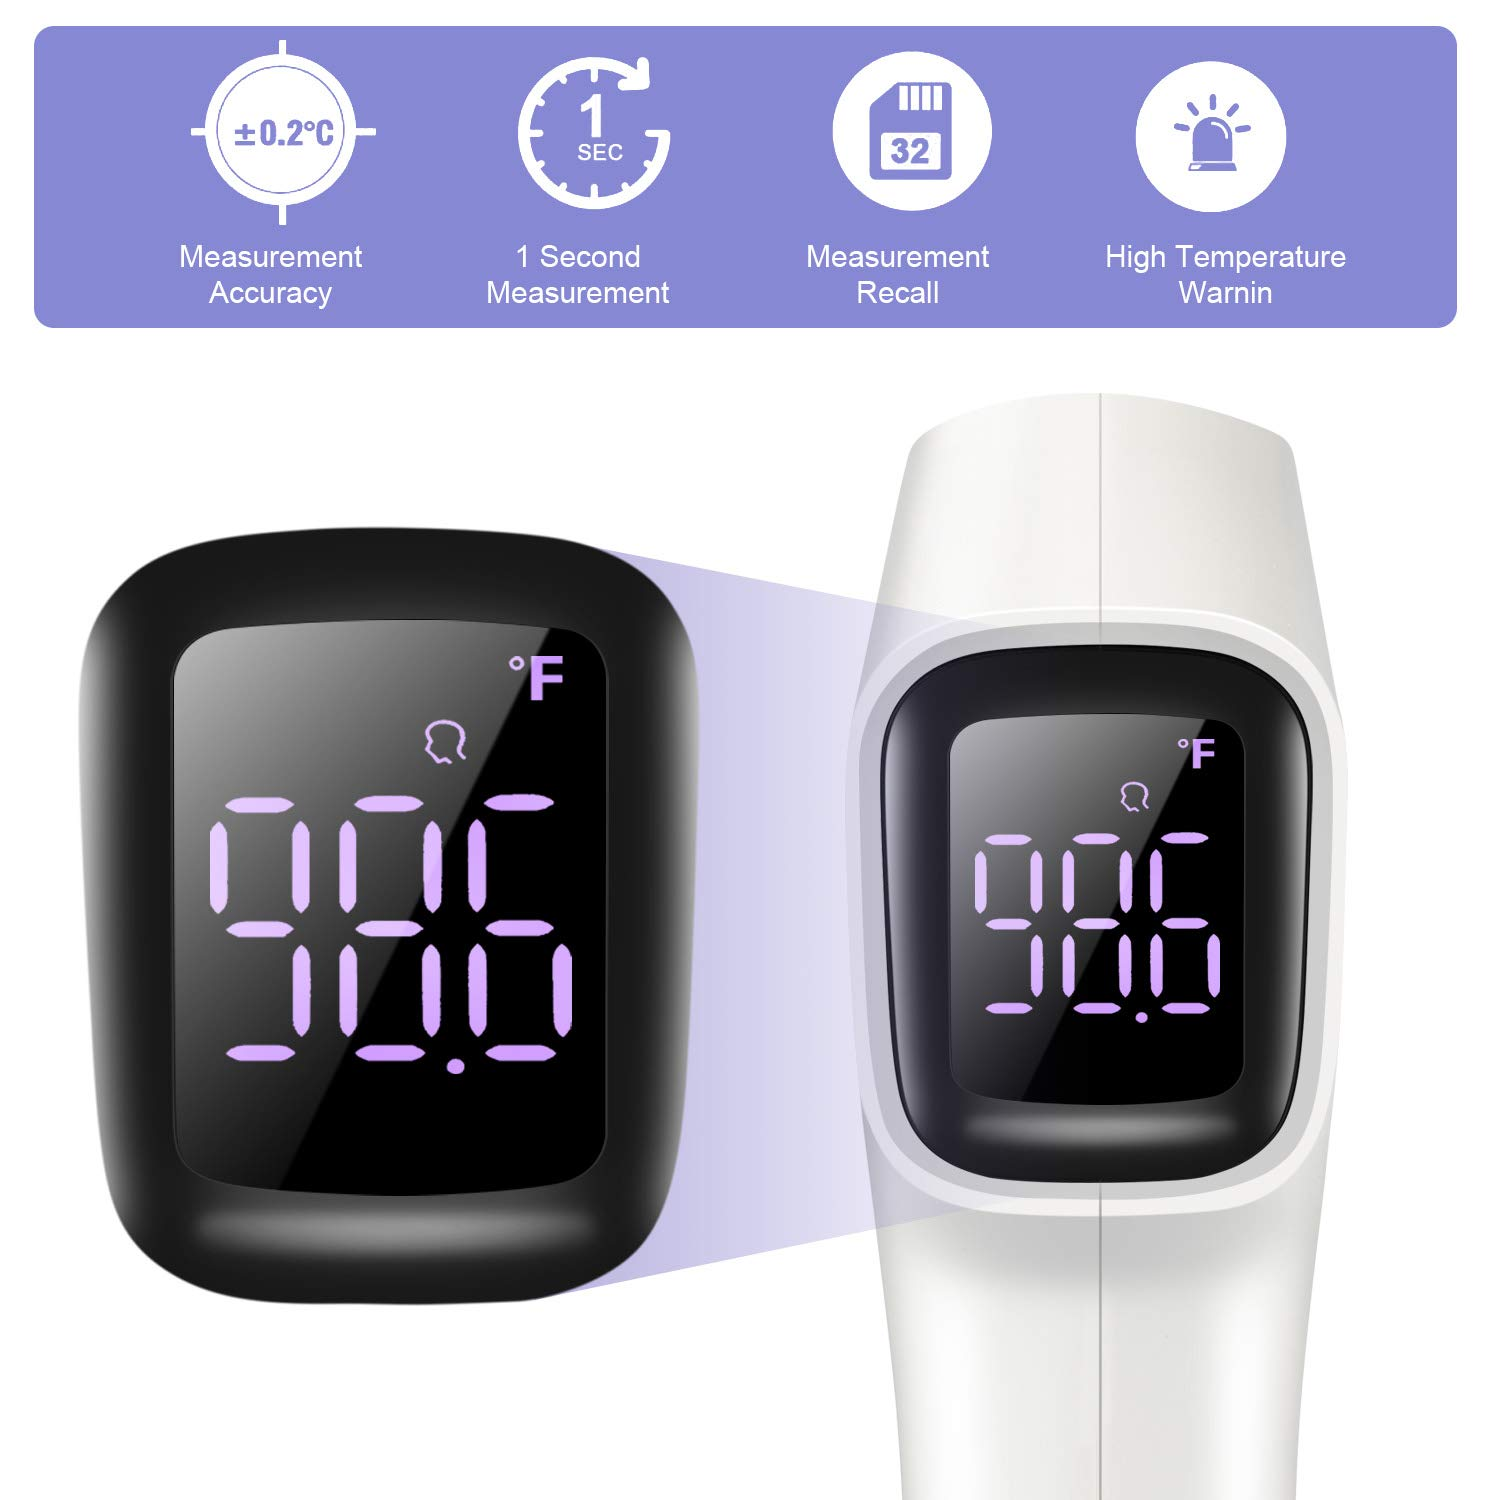 Infrared Thermometer for Adults and Kids Temperature Gun No Touch Forehead Thermometer White Contactless Non Contact Medical Grade Thermometers for Baby Fever Check